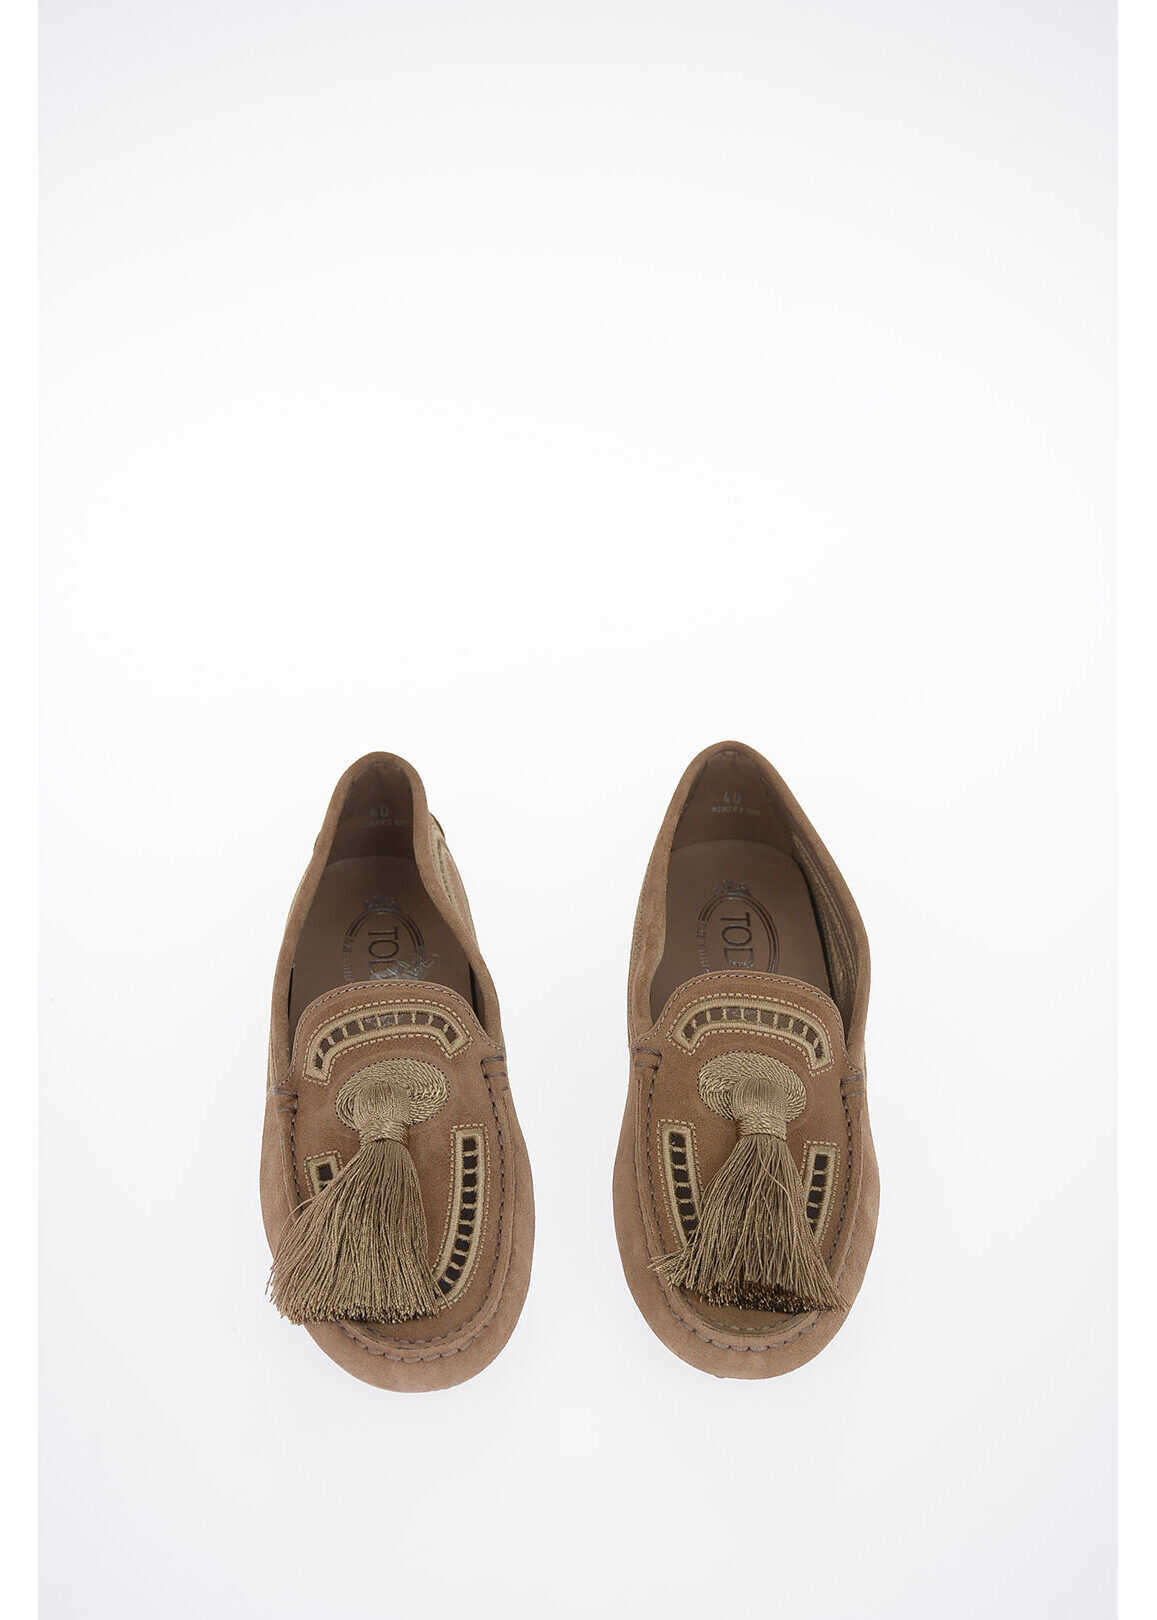 TOD'S Suede Leather Loafer BROWN